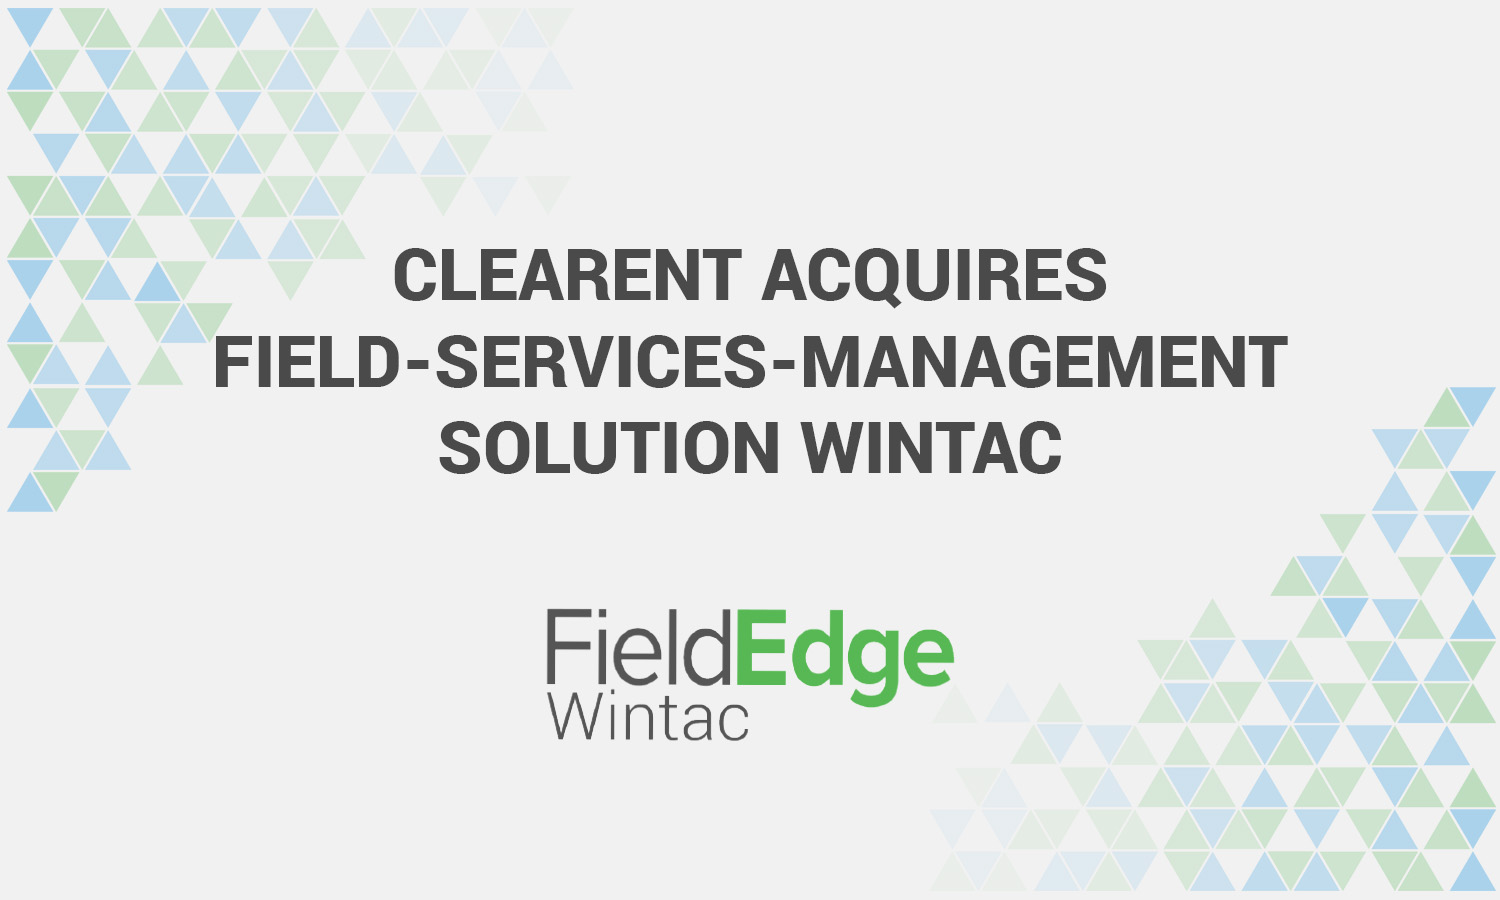 fieldedge wintac acquisition